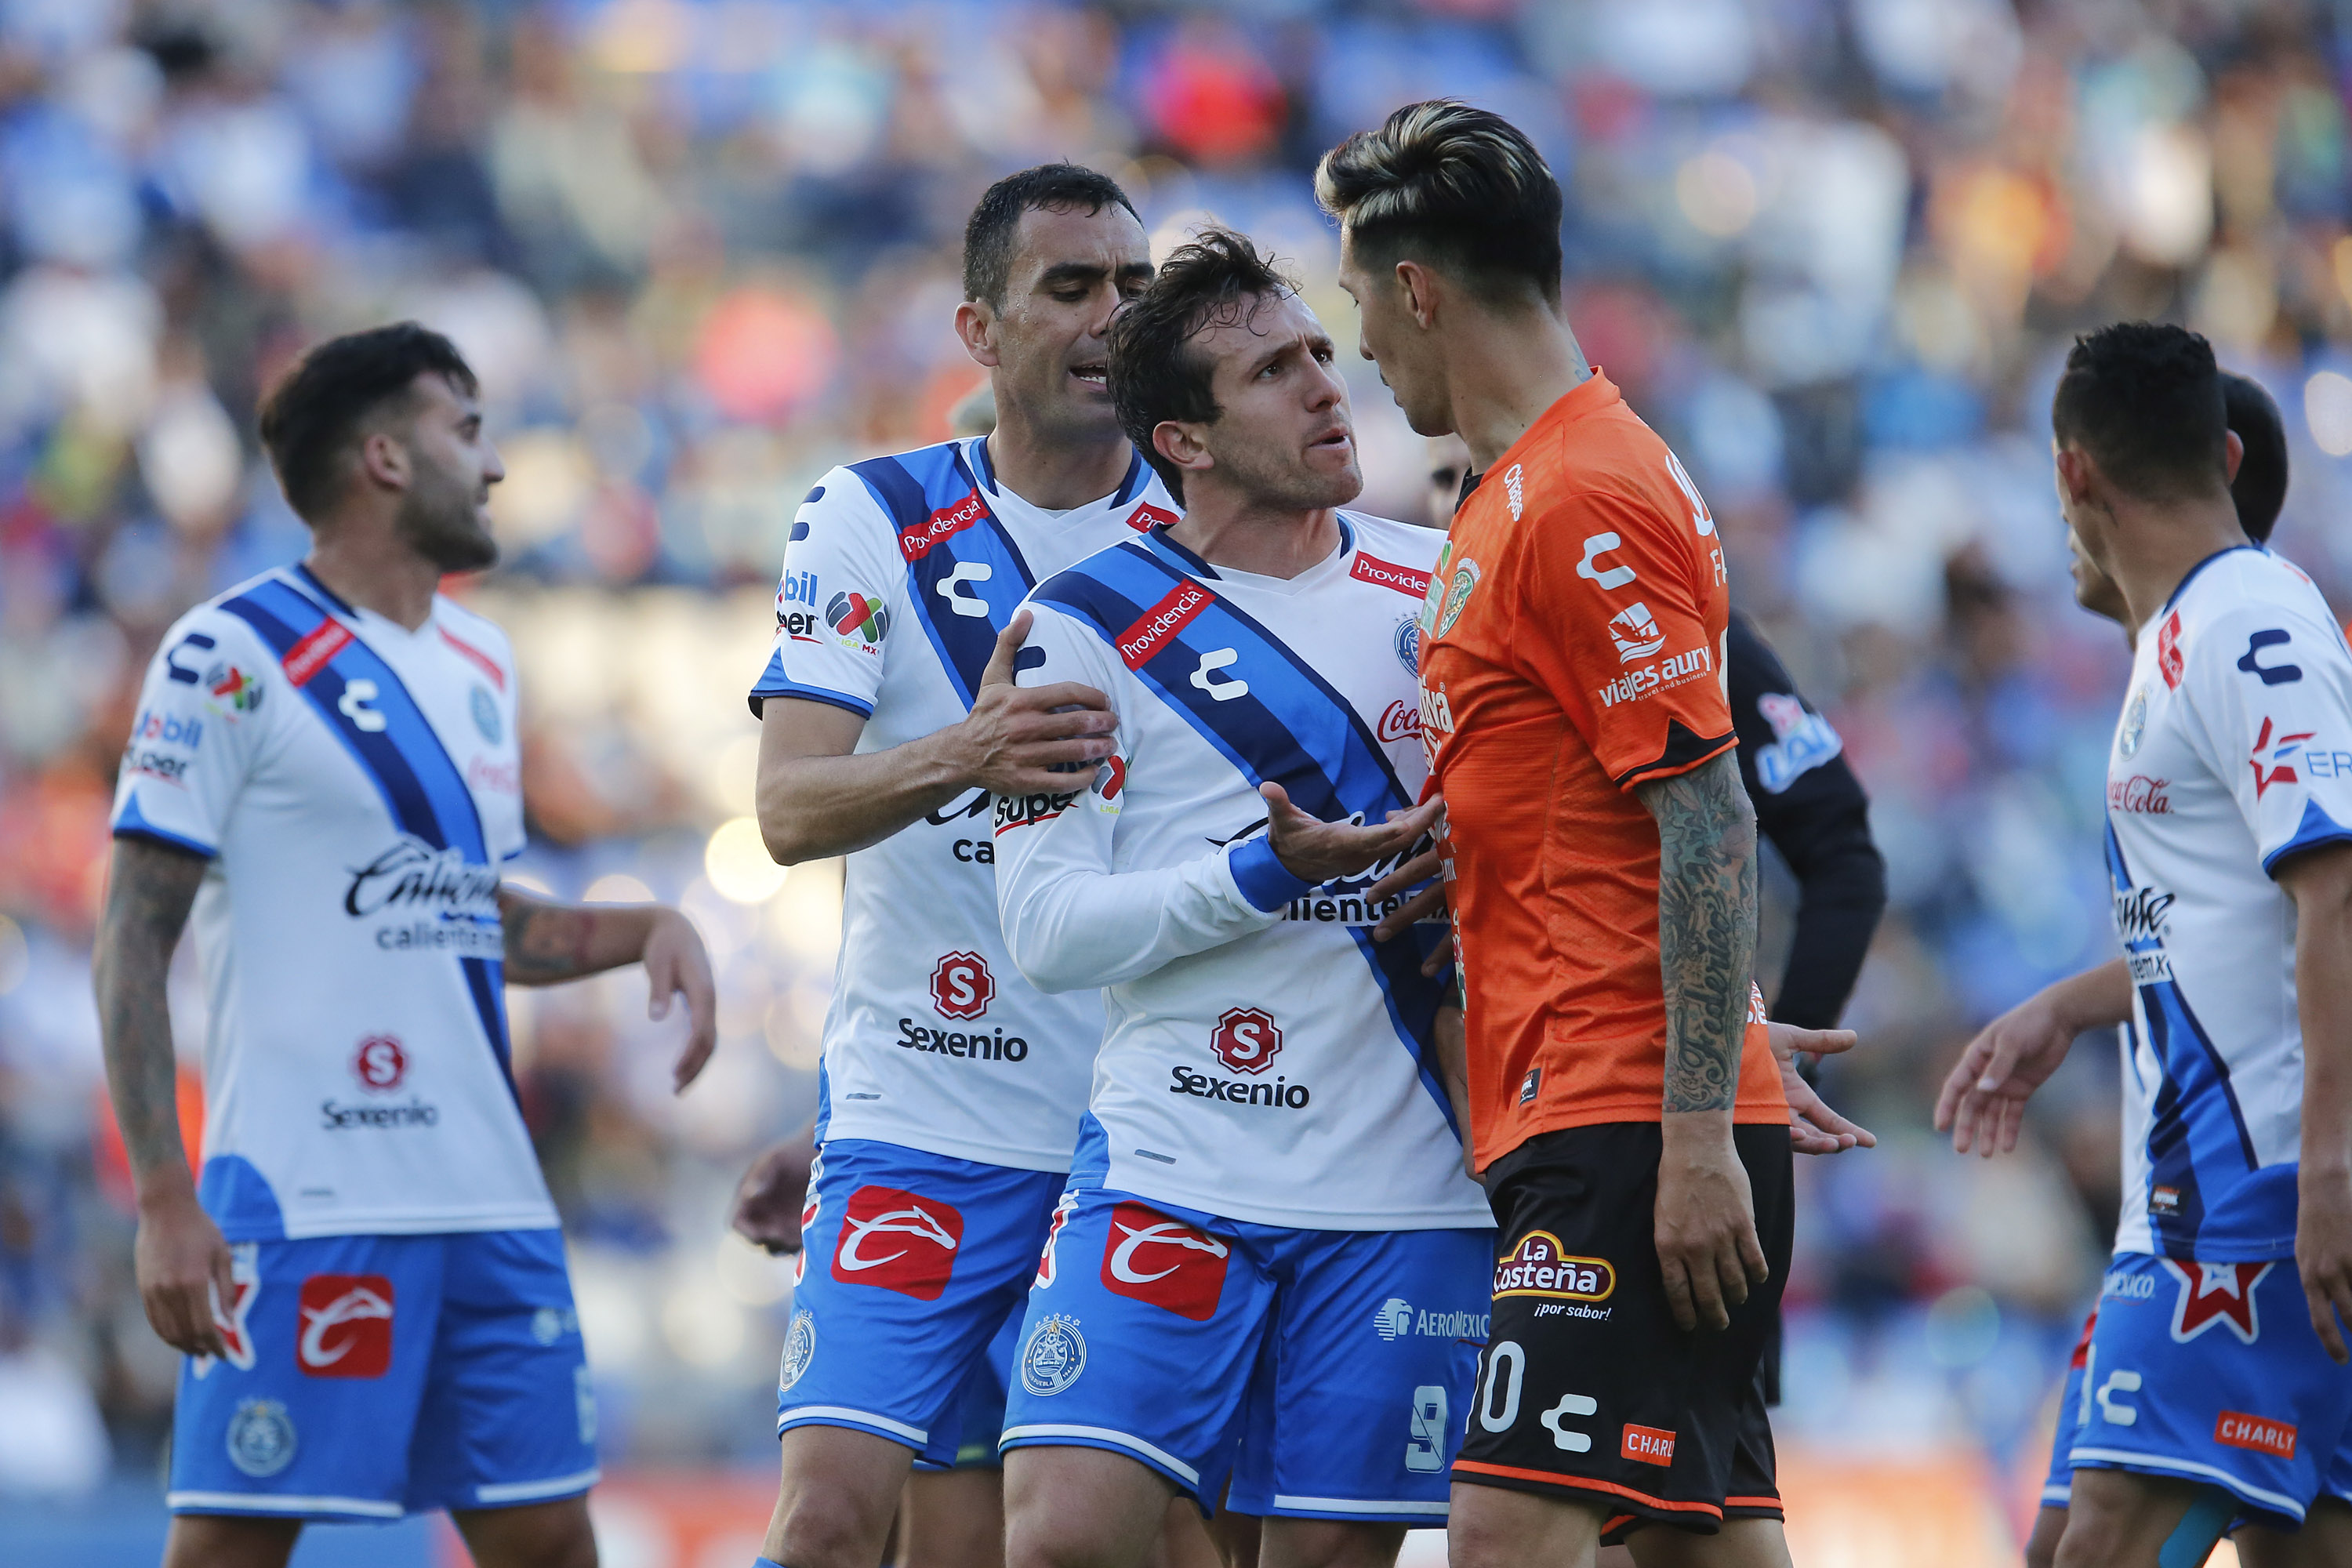 futbol-club-puebla-vs-chiapas-272458